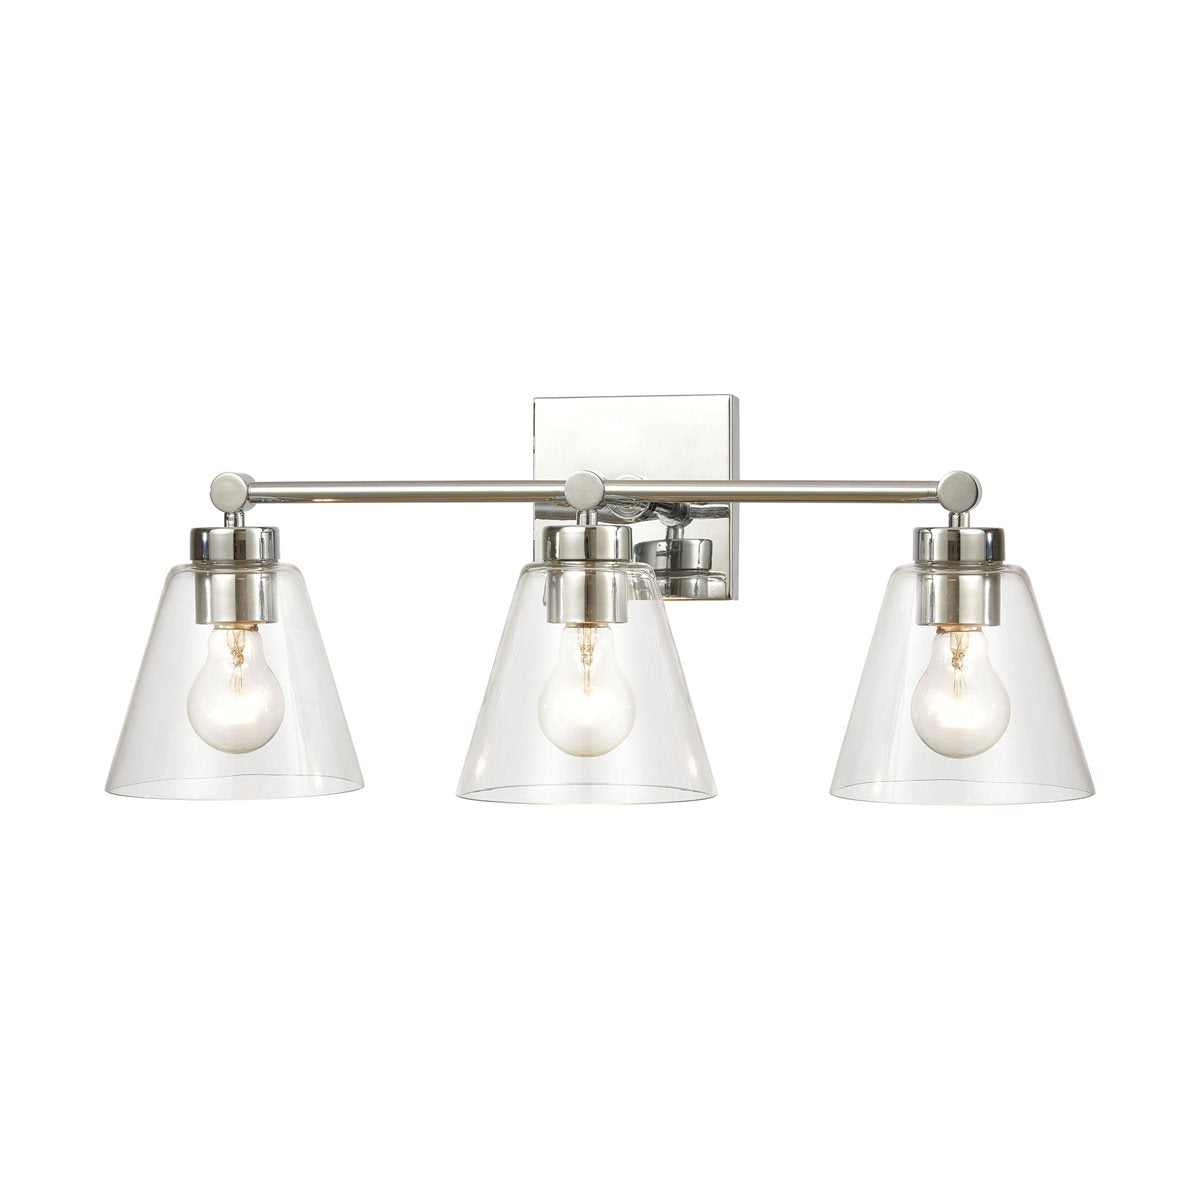 East Point 3-Light Vanity Light